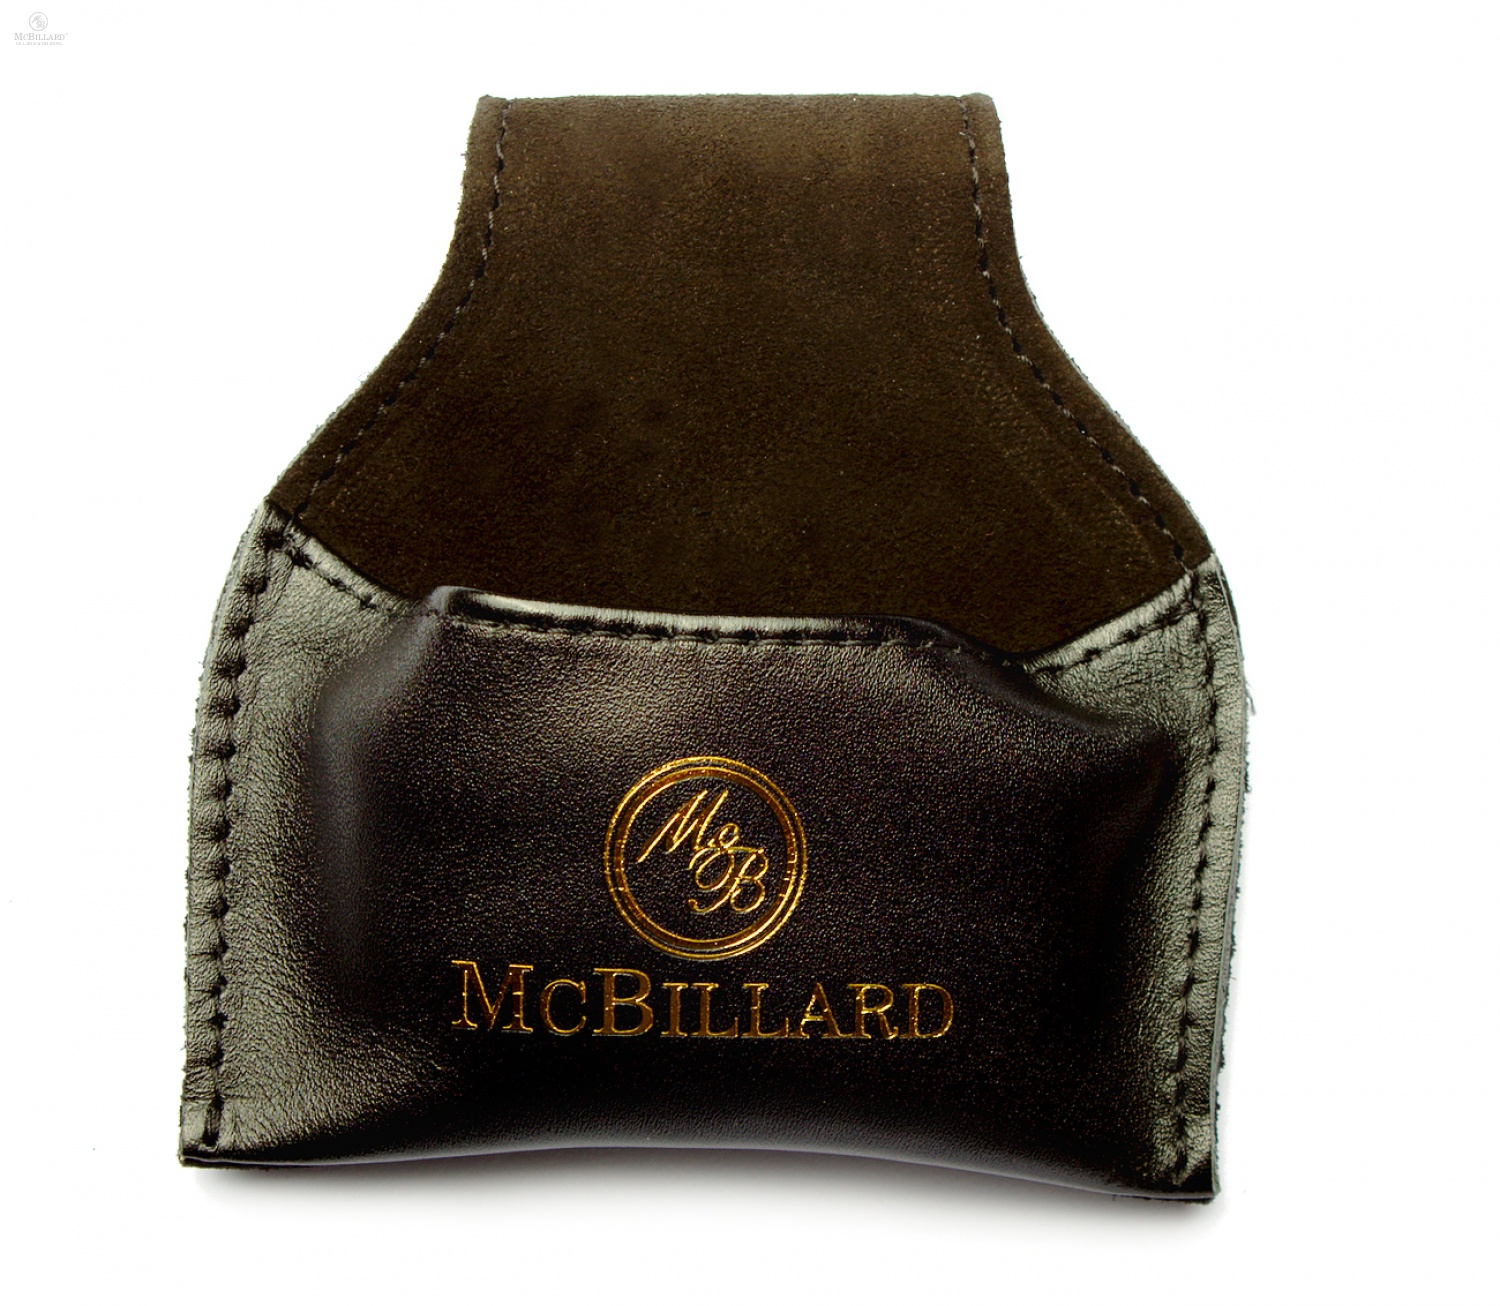 Billiard Chalk Bags Mcbillard Black Mcbillard The